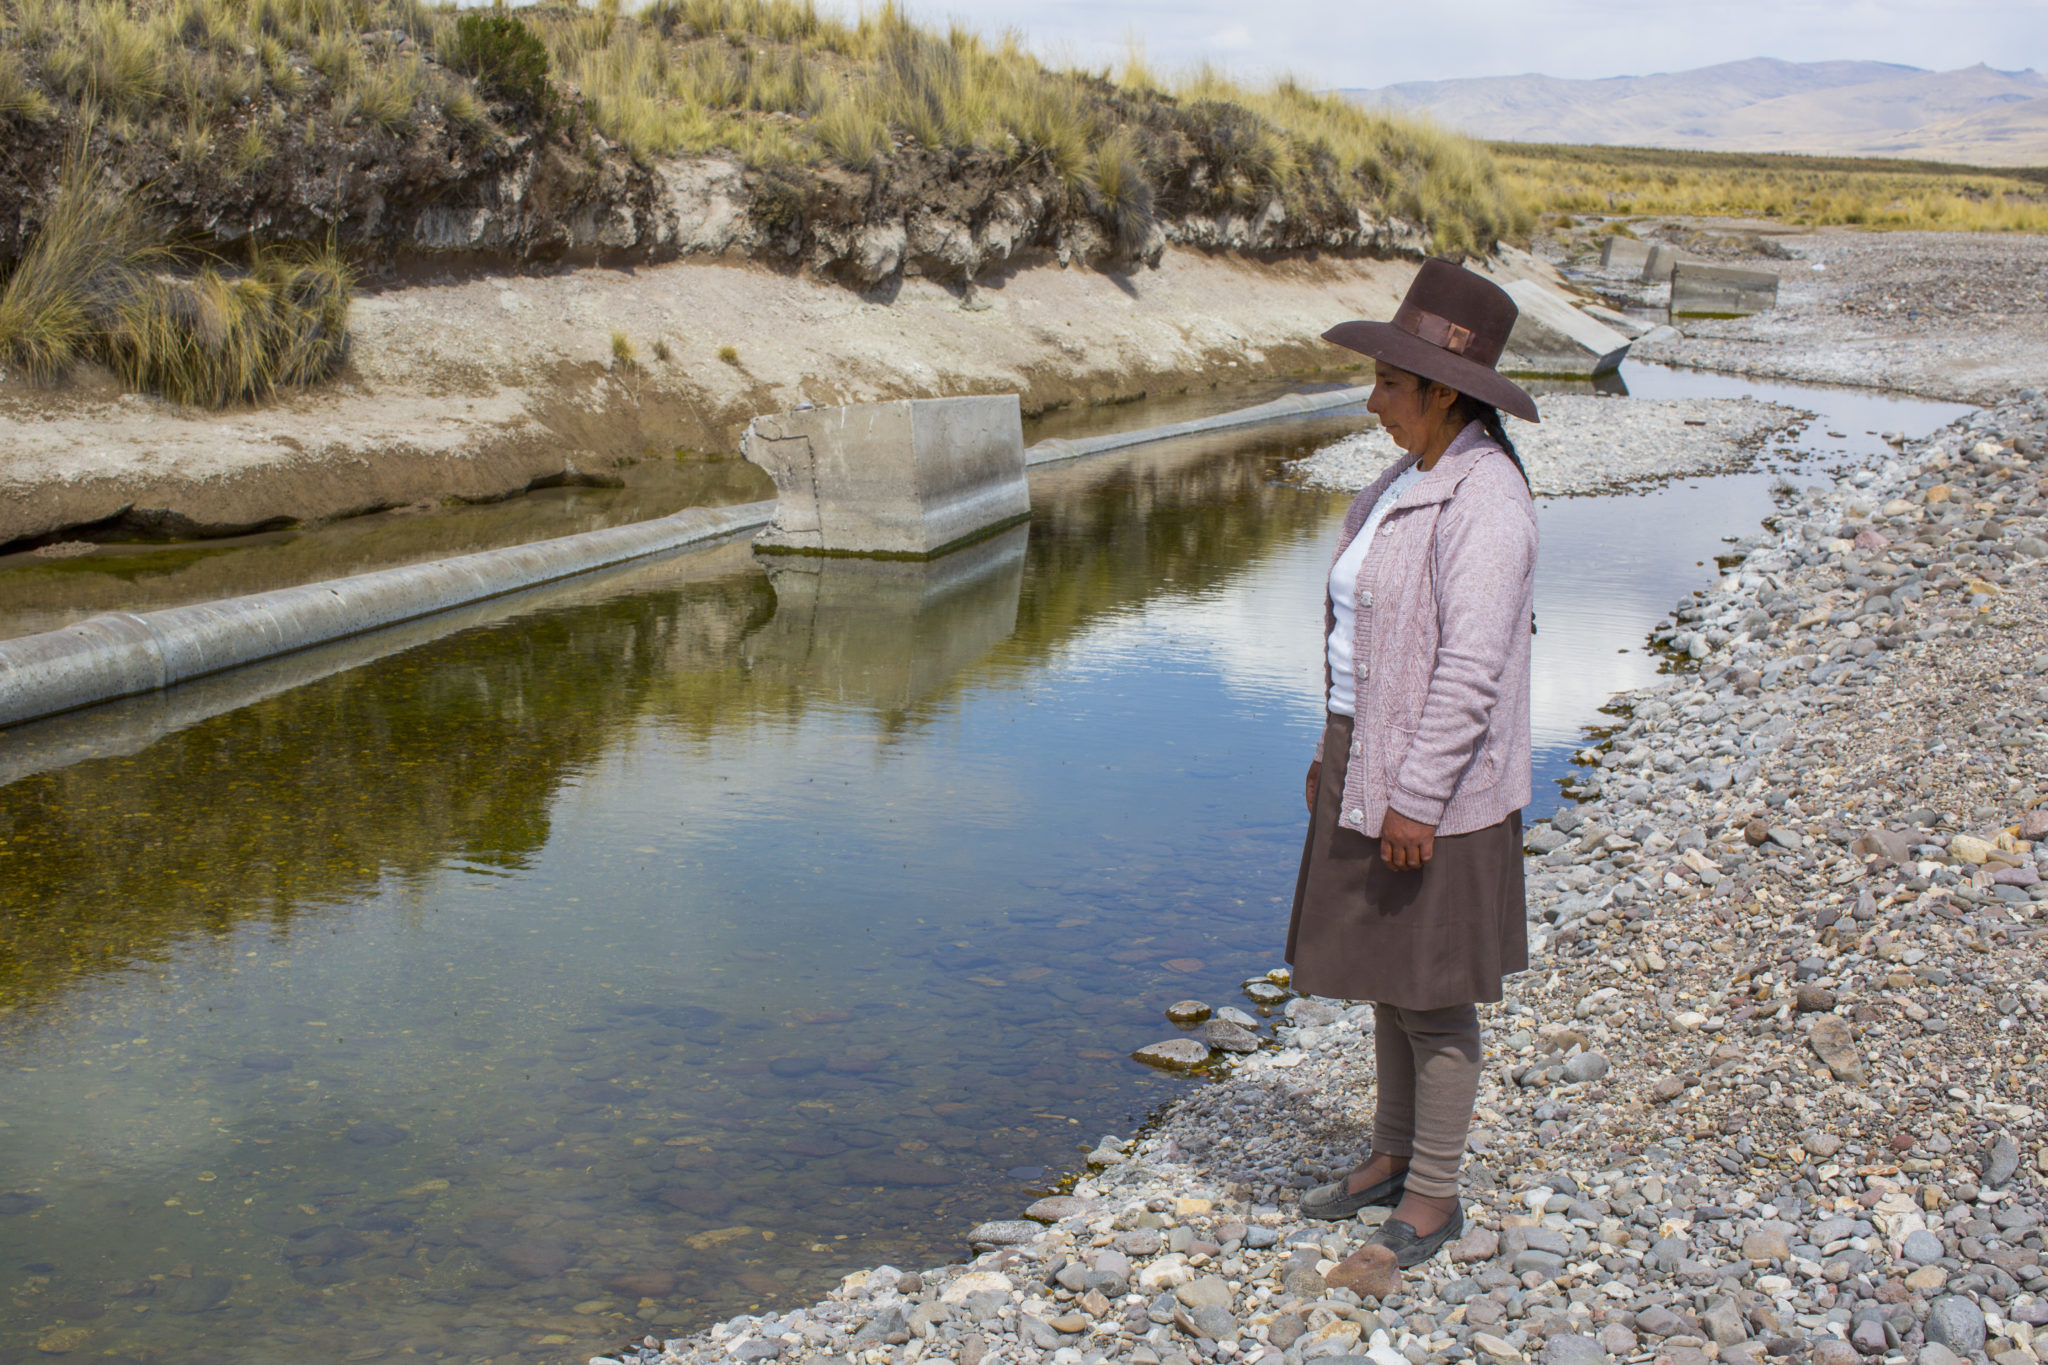 Peru: Authorities neglect Indigenous Peoples exposed to contaminated water